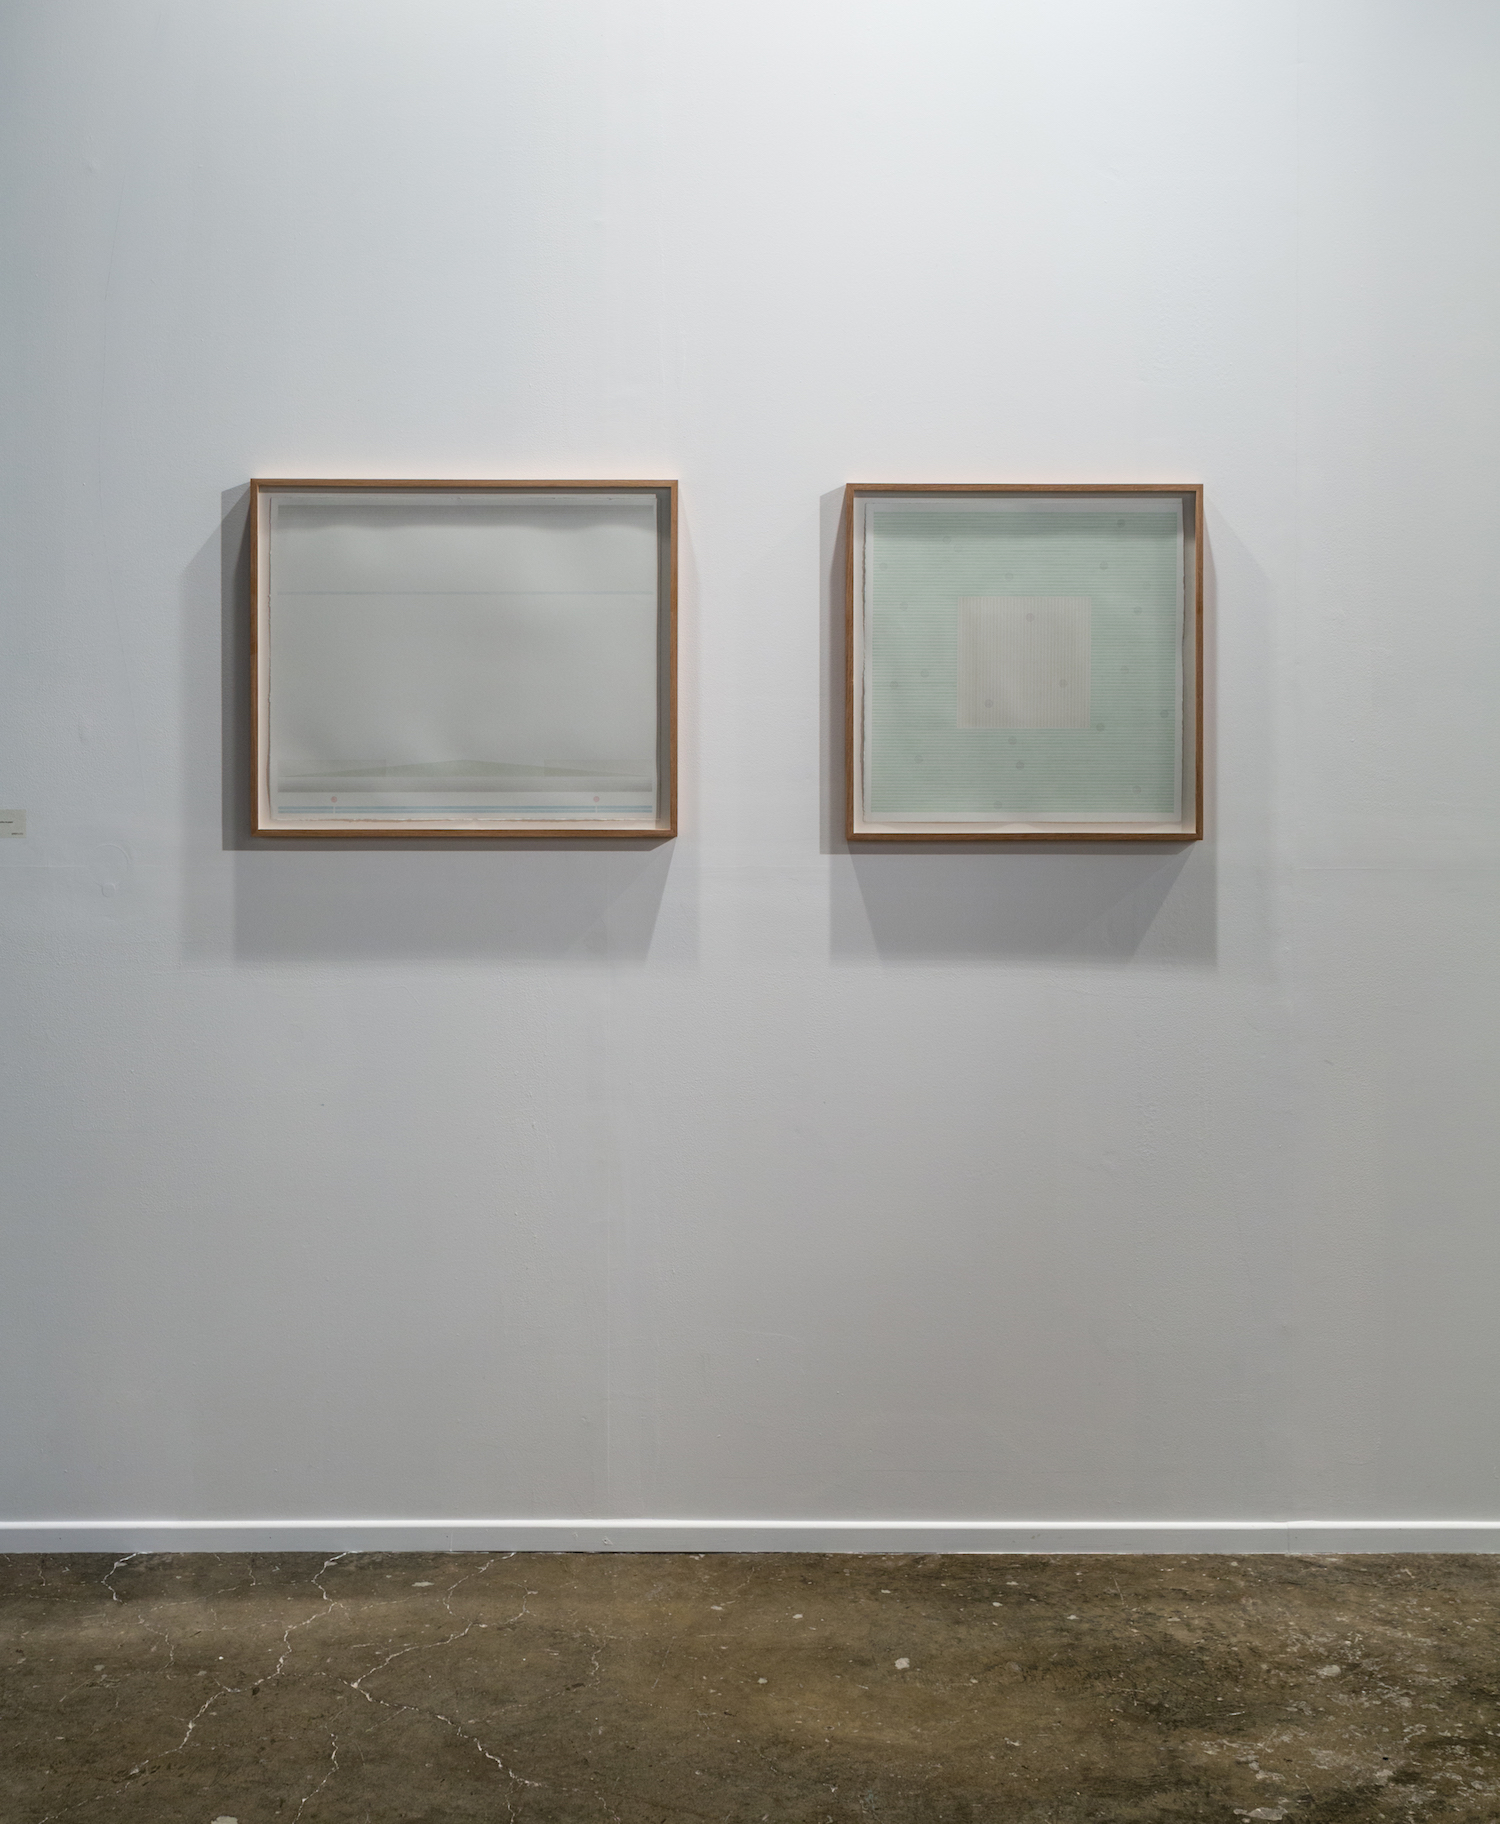 LEFT - RIGHT  LEFT: Fairweather, 2016, graphite pencil and acrylics on paper, 56.5 x 68.5 cm  //  RIGHT: Winter's end, 2016, graphite pencil and acrylics on paper, 56.5 x 56.5 cm